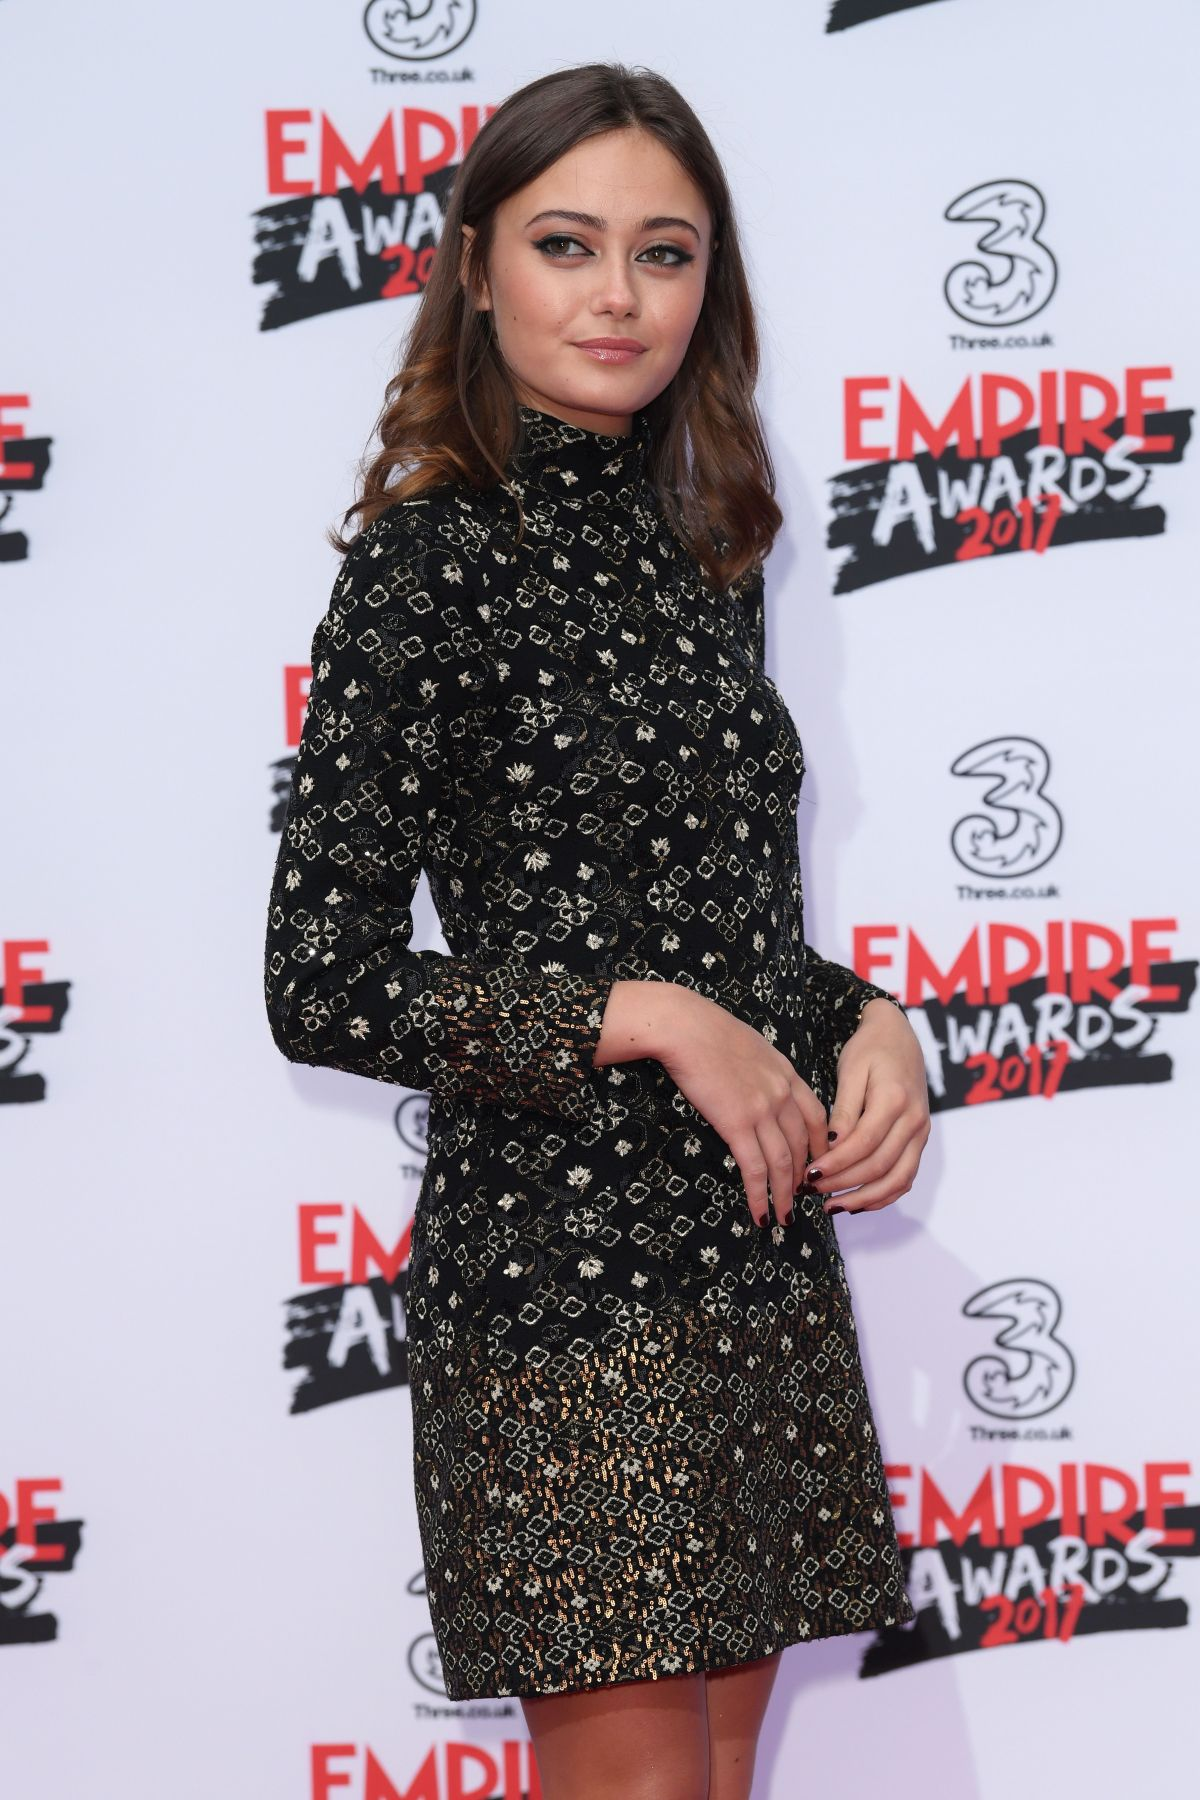 ella purnell викиella purnell gif, ella purnell tumblr, ella purnell vk, ella purnell instagram, ella purnell gif hunt, ella purnell miss peregrine, ella purnell films, ella purnell вики, ella purnell site, ella purnell snapchat, ella purnell 2016, ella purnell gif tumblr, ella purnell fansite, ella purnell eyes, ella purnell sing, ella purnell dating, ella purnell underwater, ella purnell net worth, ella purnell source, ella purnell dress